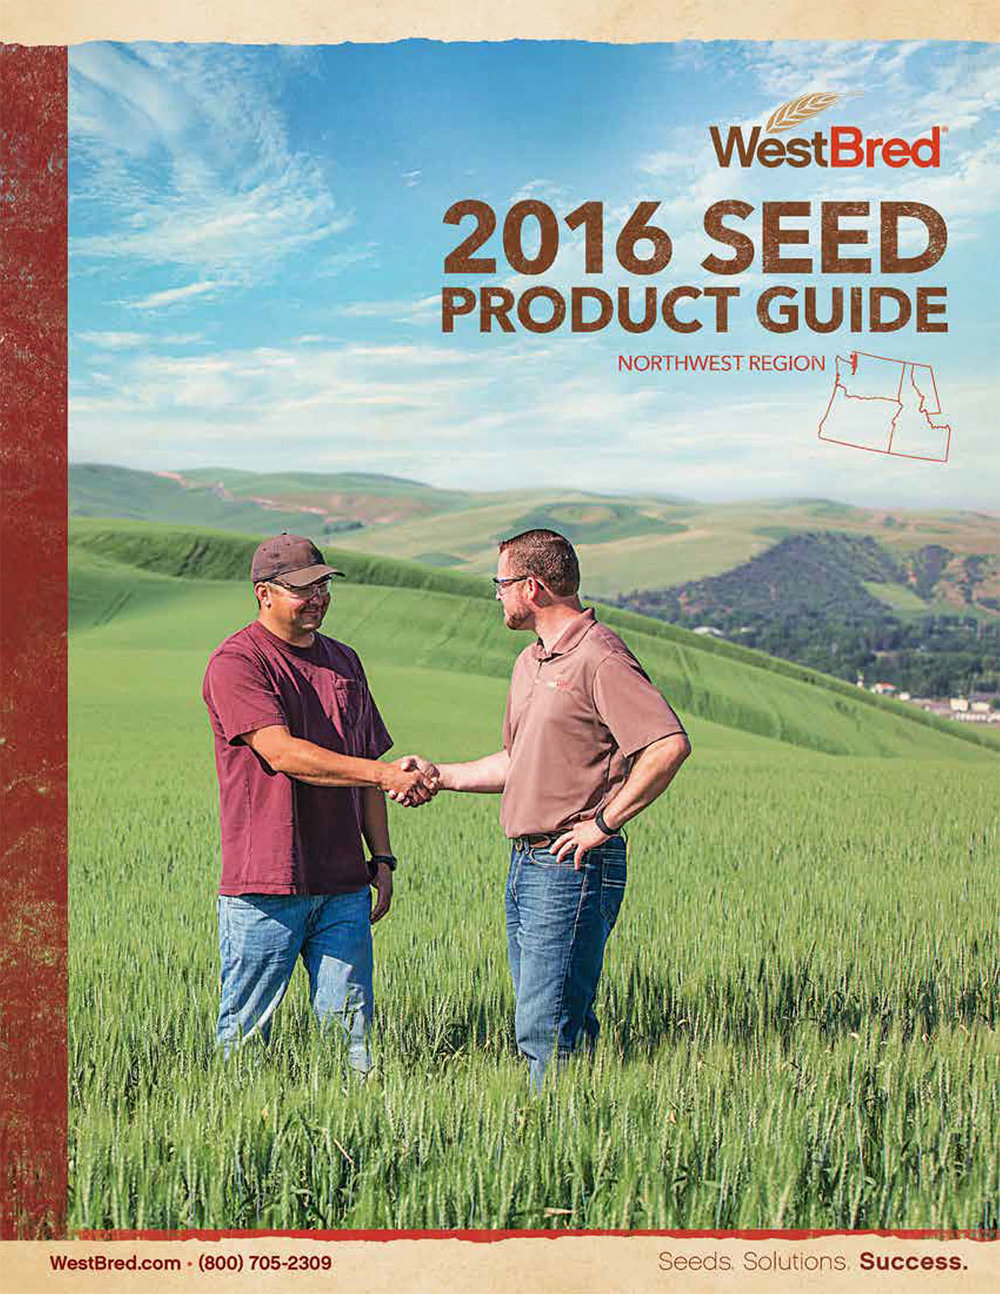 WestBred 2016 Seed Product Guide